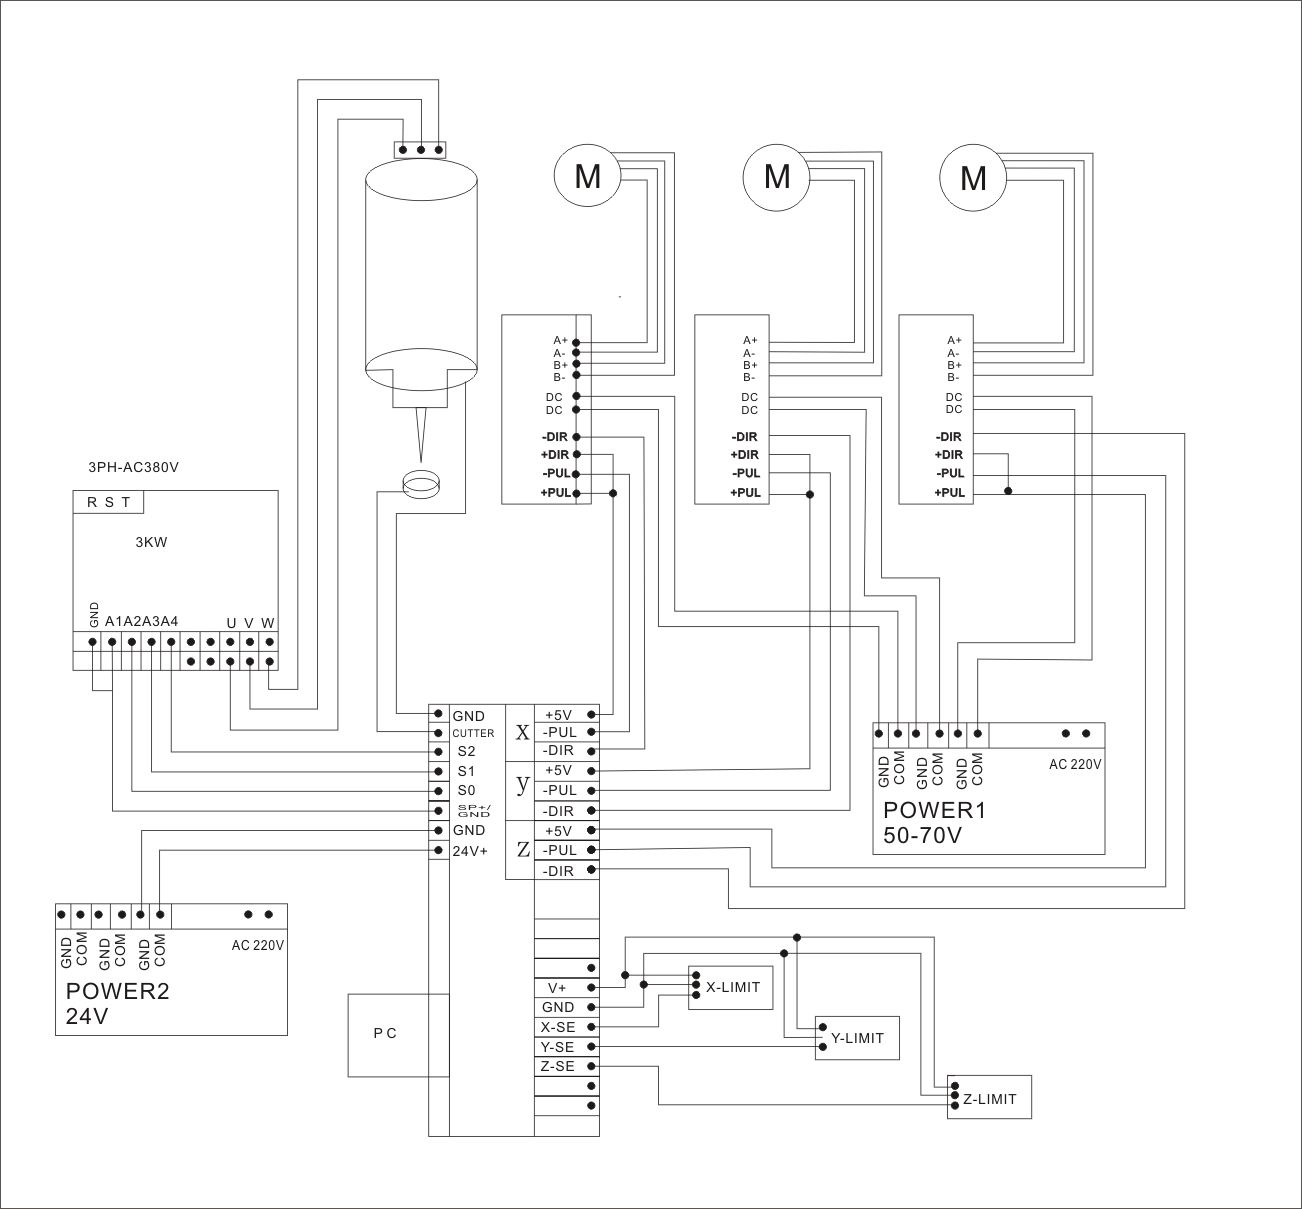 Wiring diagram for Woodworking CNC Router - Tengzhou Jianda CNC ...